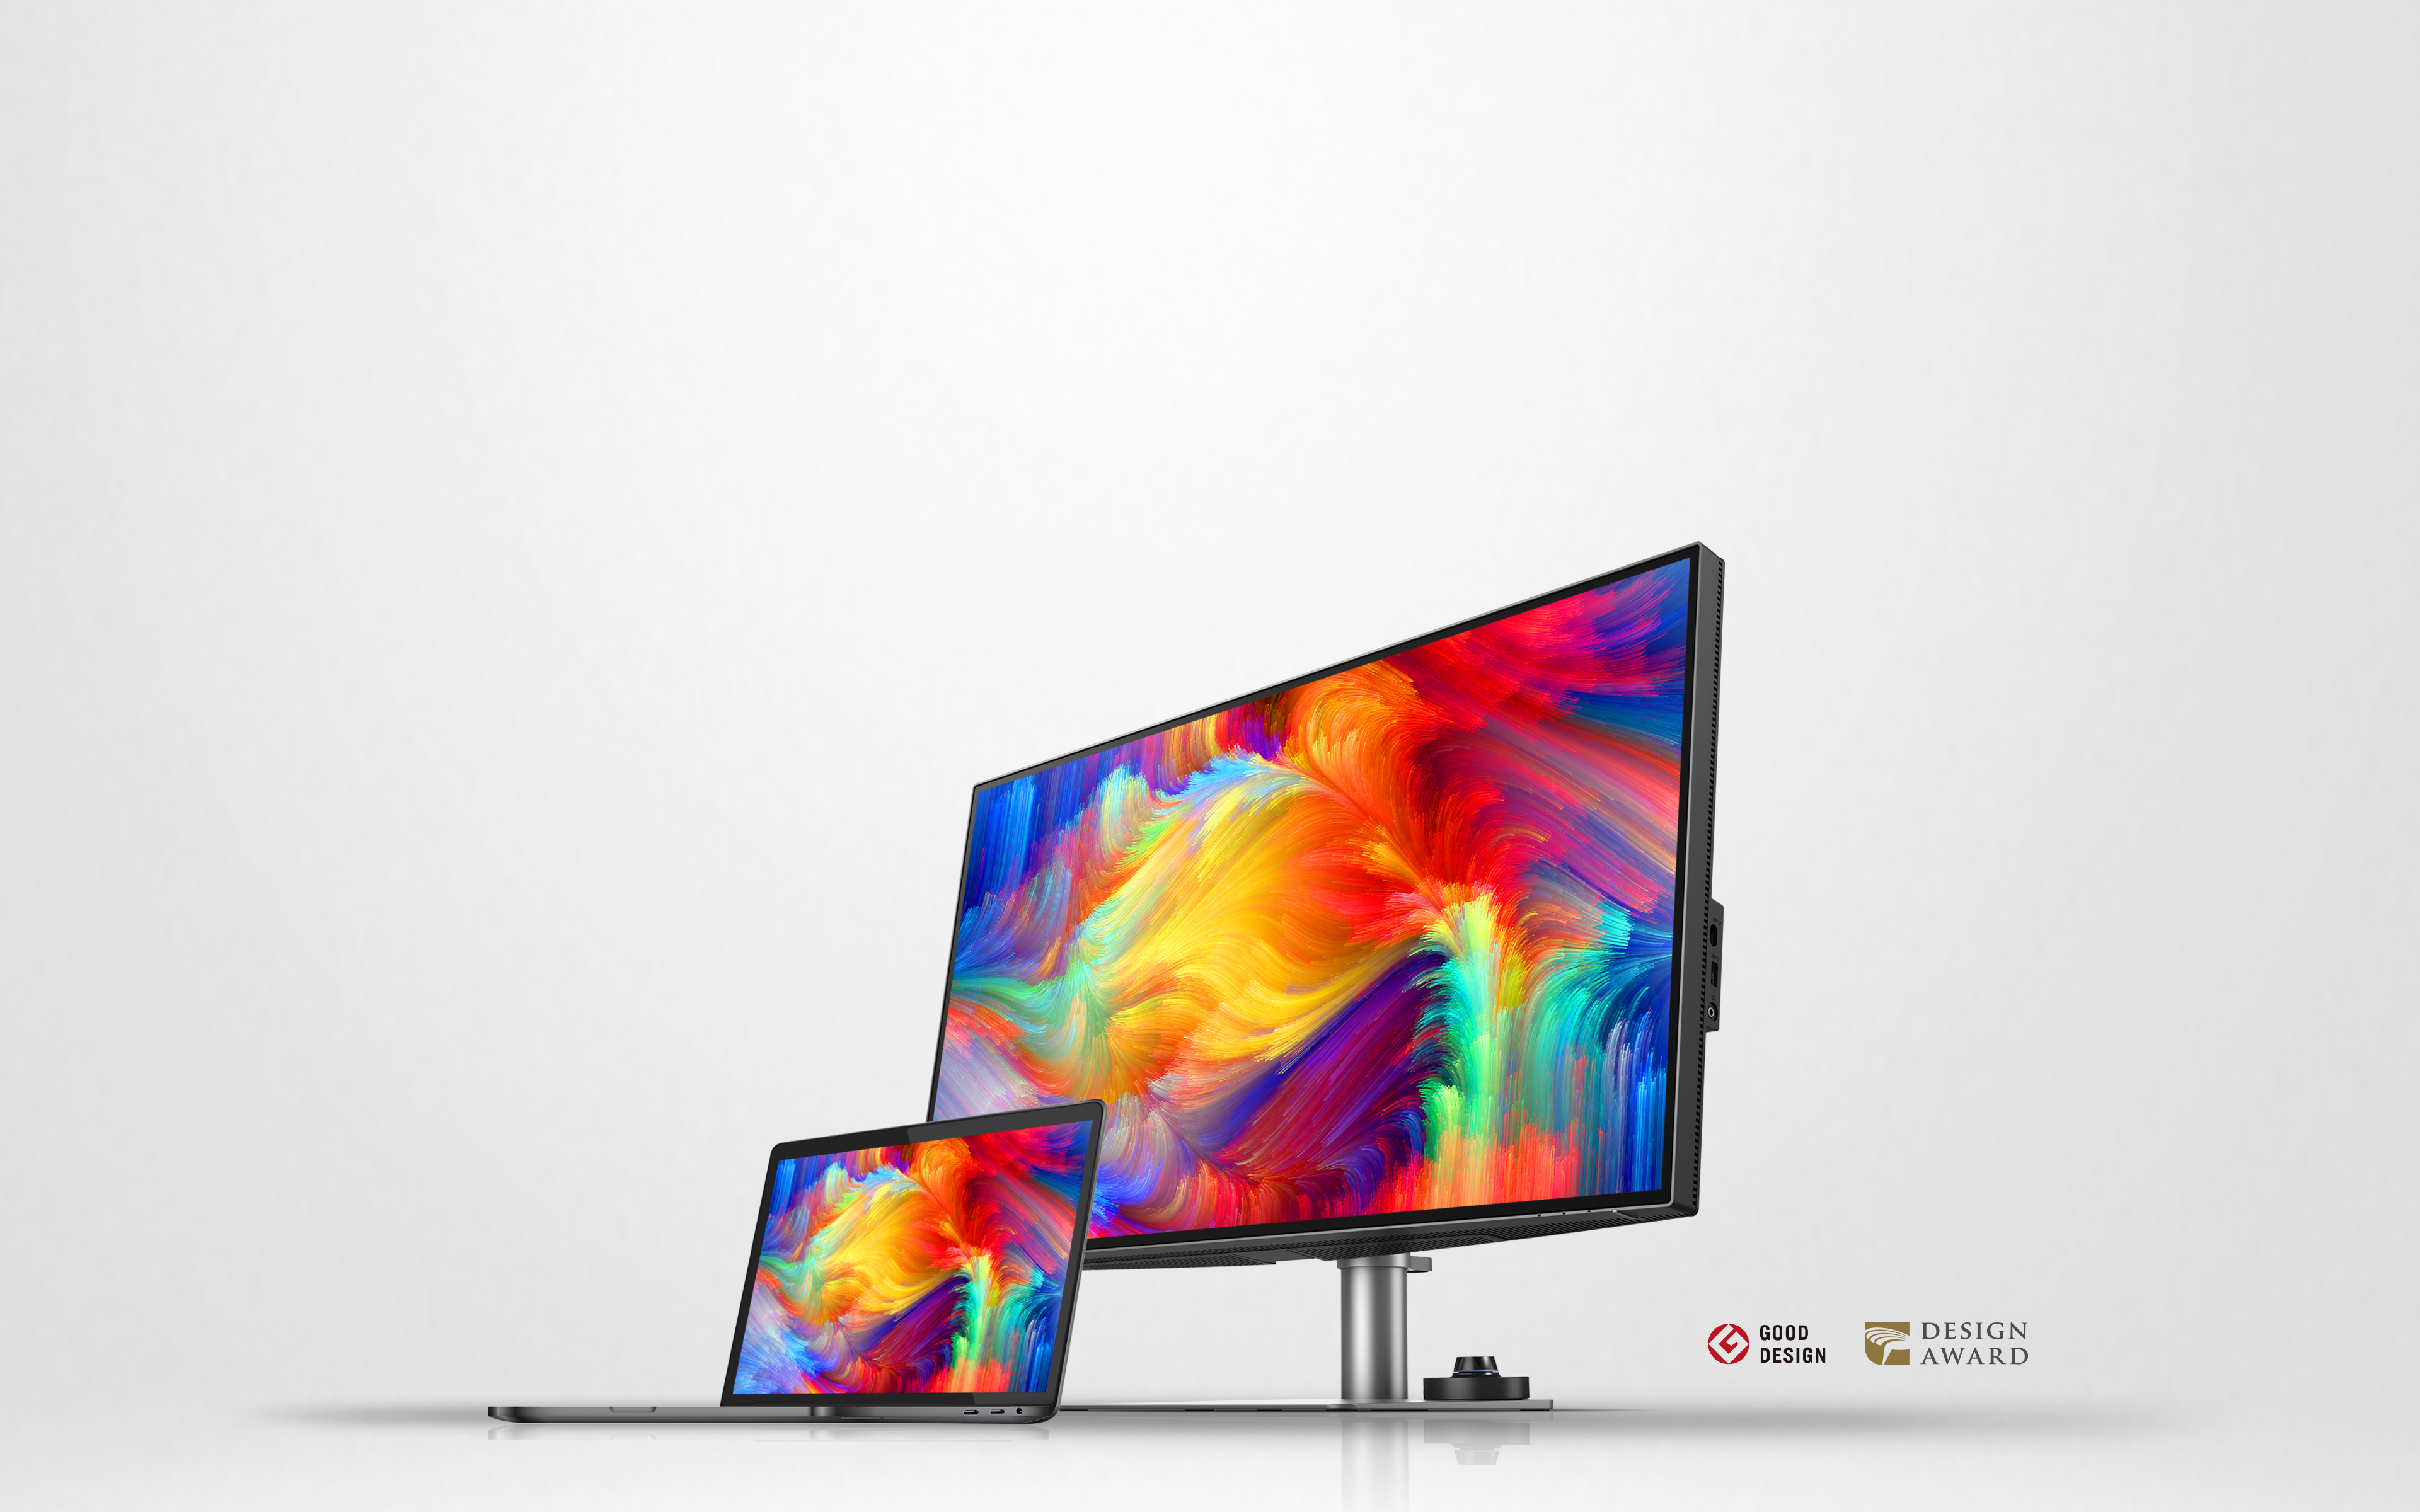 BenQ PD3220U 4K IPS Monitor for Graphic Design with Thunderbolt 3 | BenQ Finland